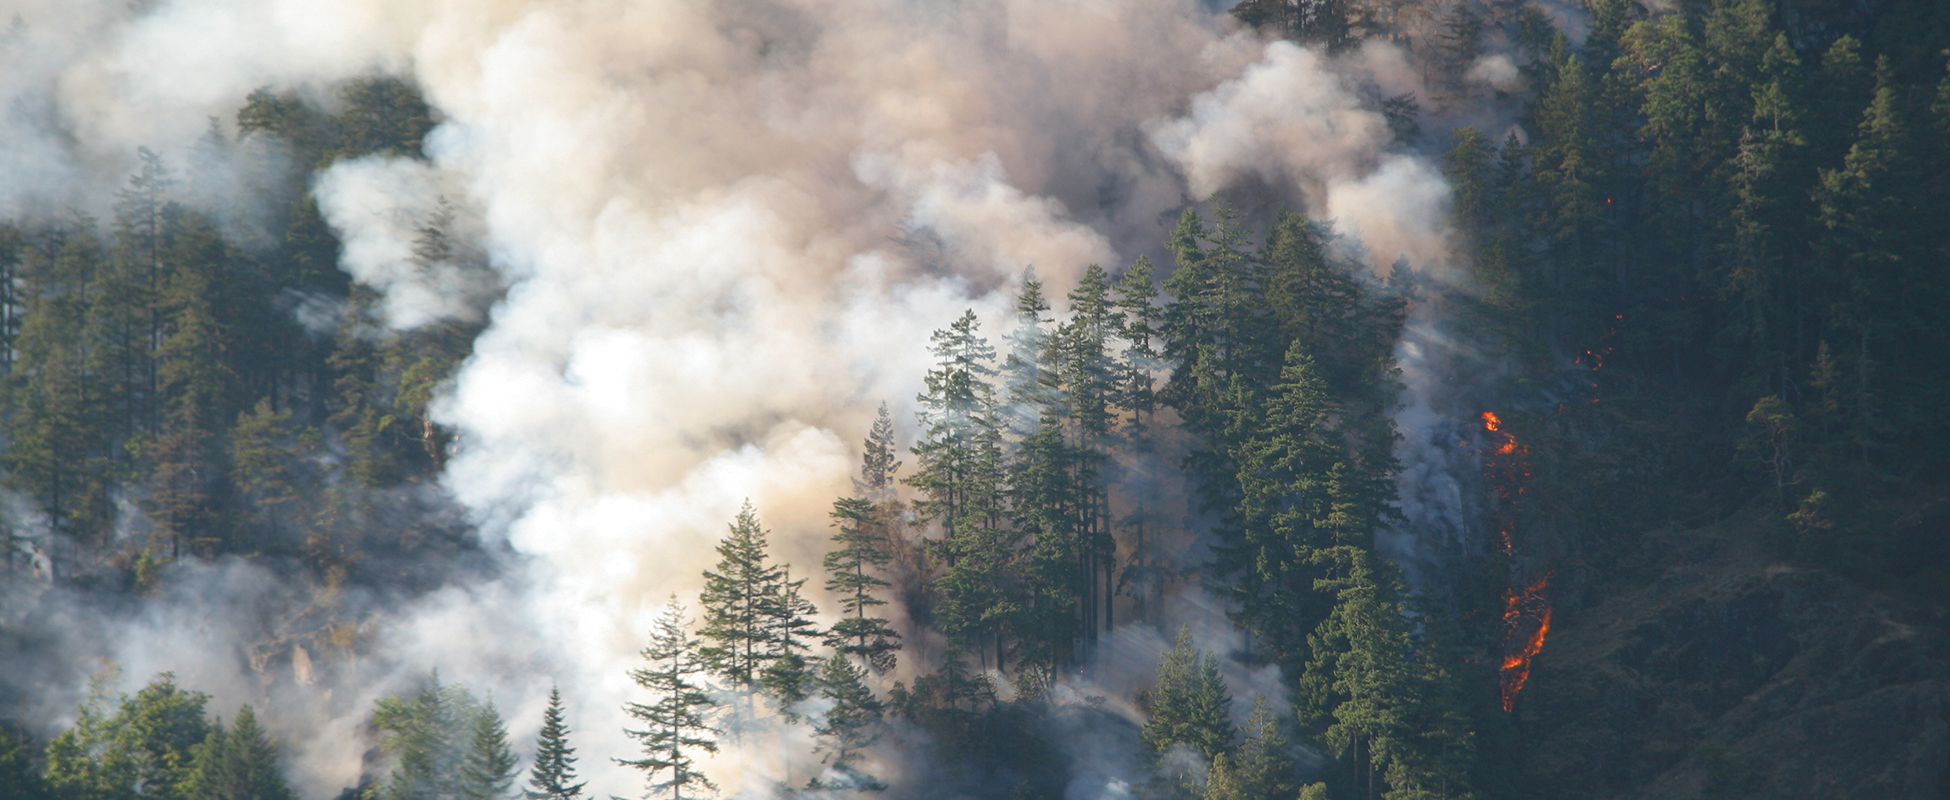 Silviculture fire forest health